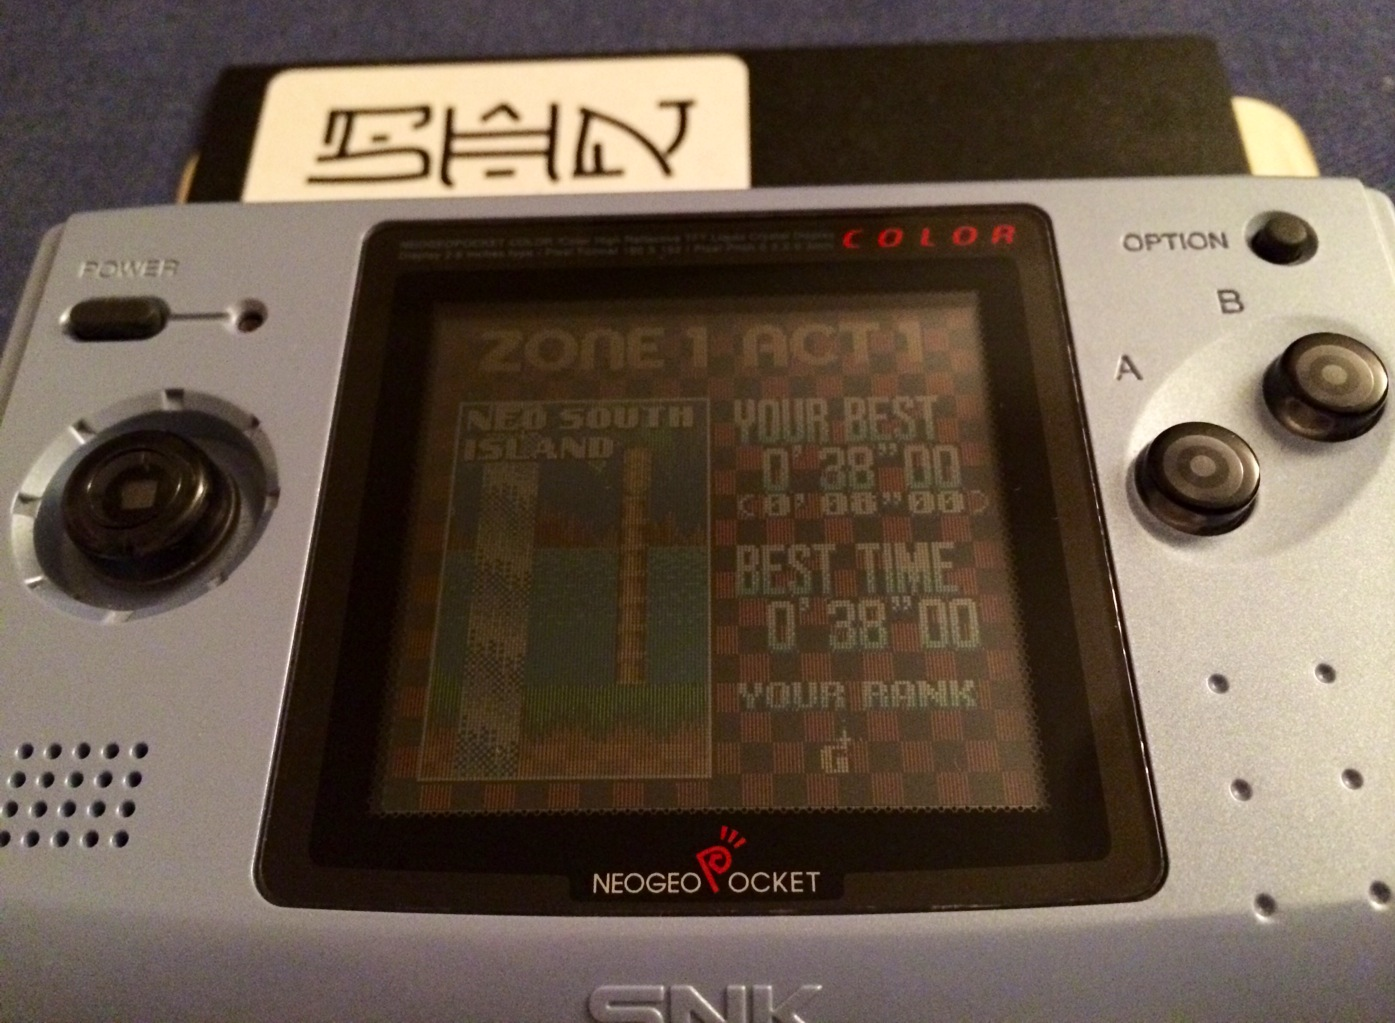 SHiNjide: Sonic Pocket Adventures [Time Trail Zone 1-1] (Neo Geo Pocket Color) 0:00:38 points on 2014-07-10 04:41:29